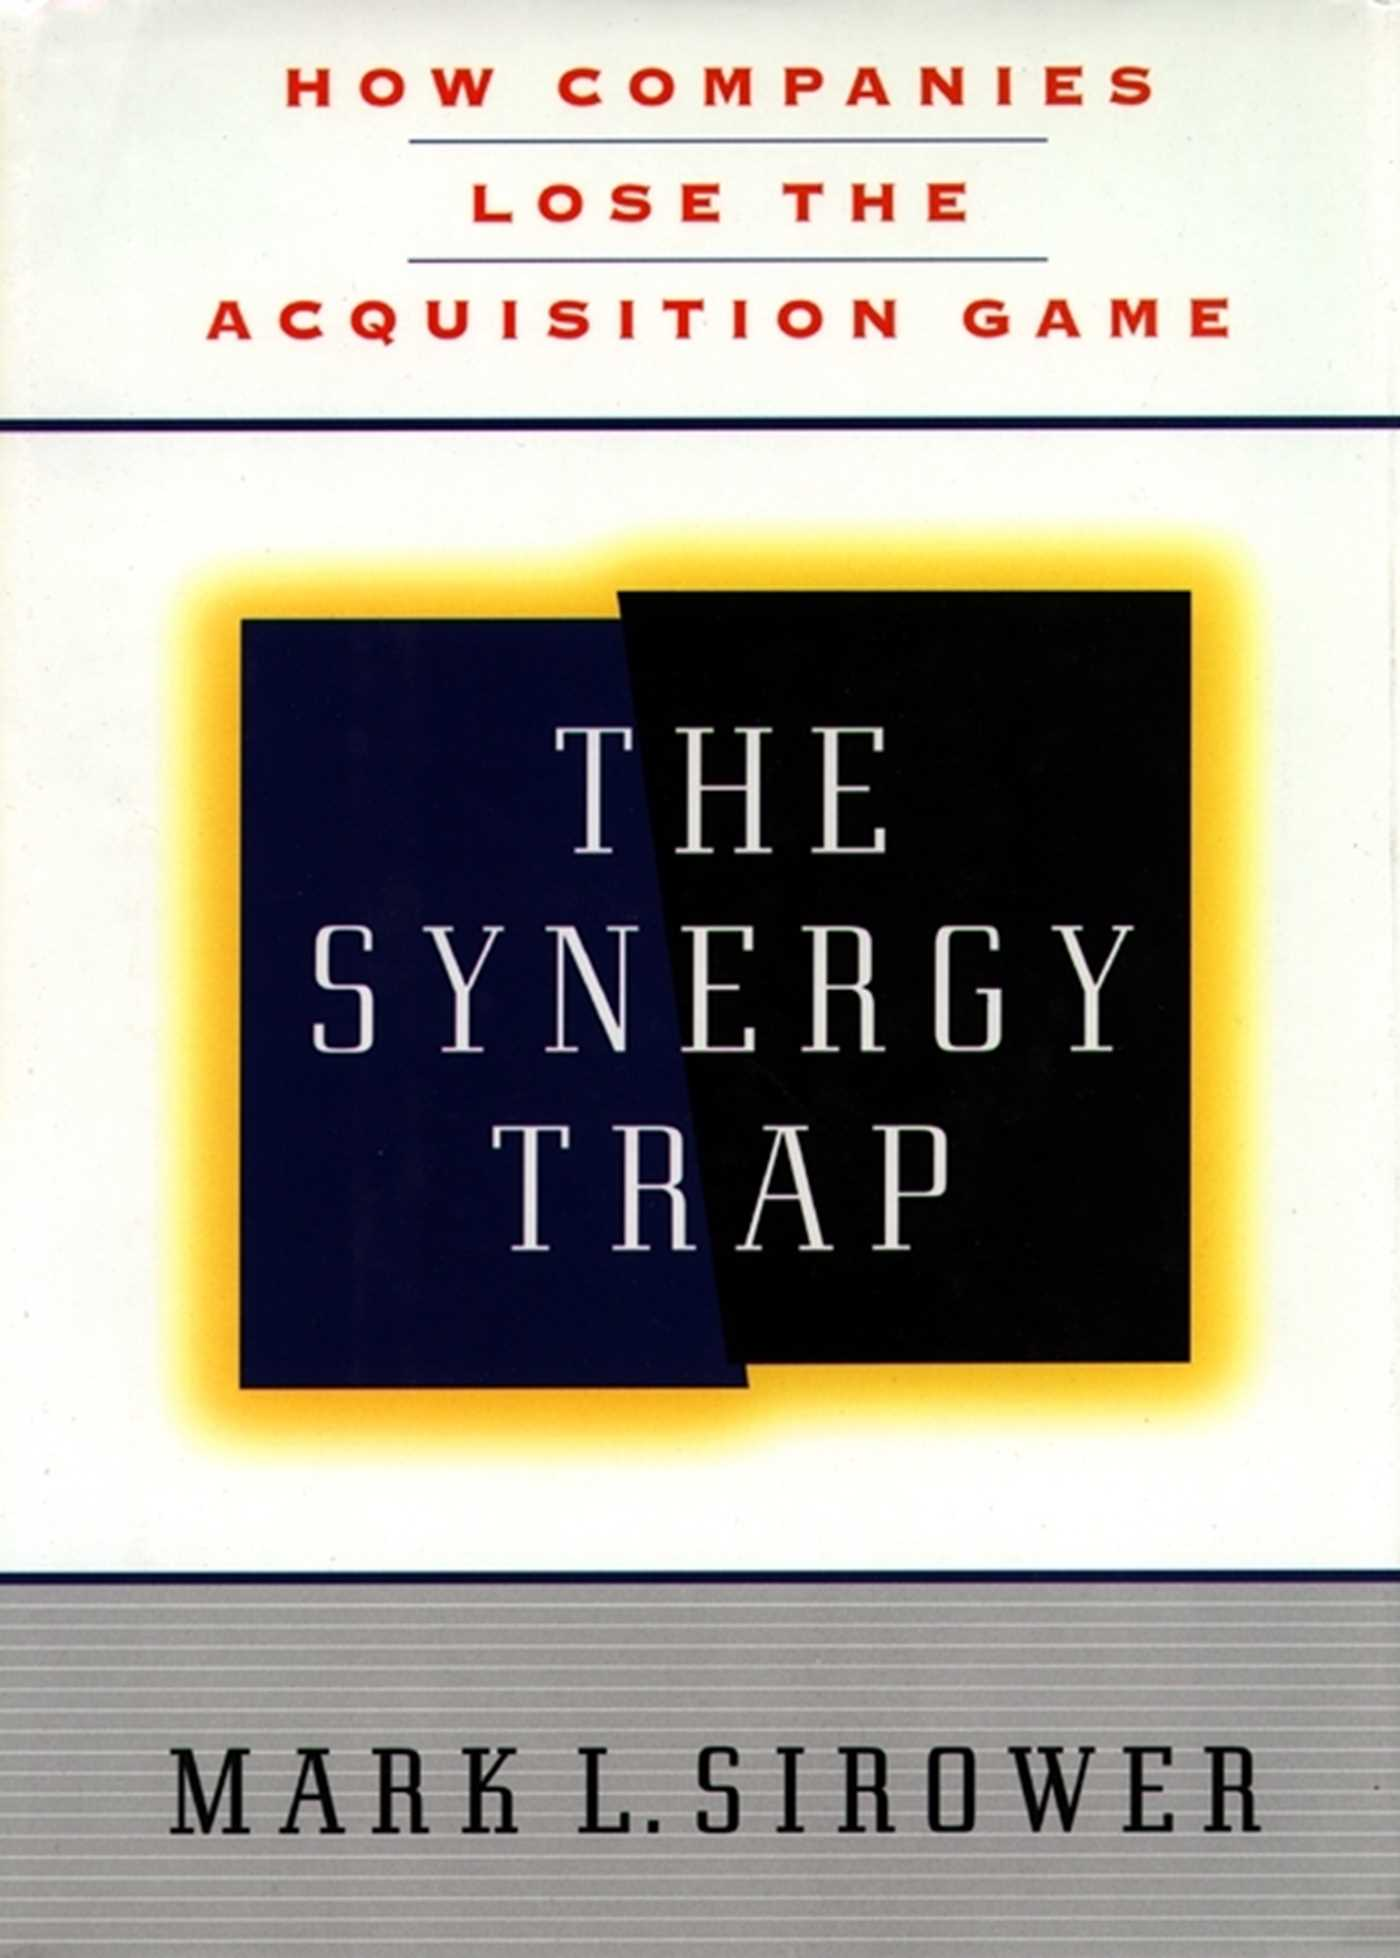 The synergy trap 9781439137703 hr